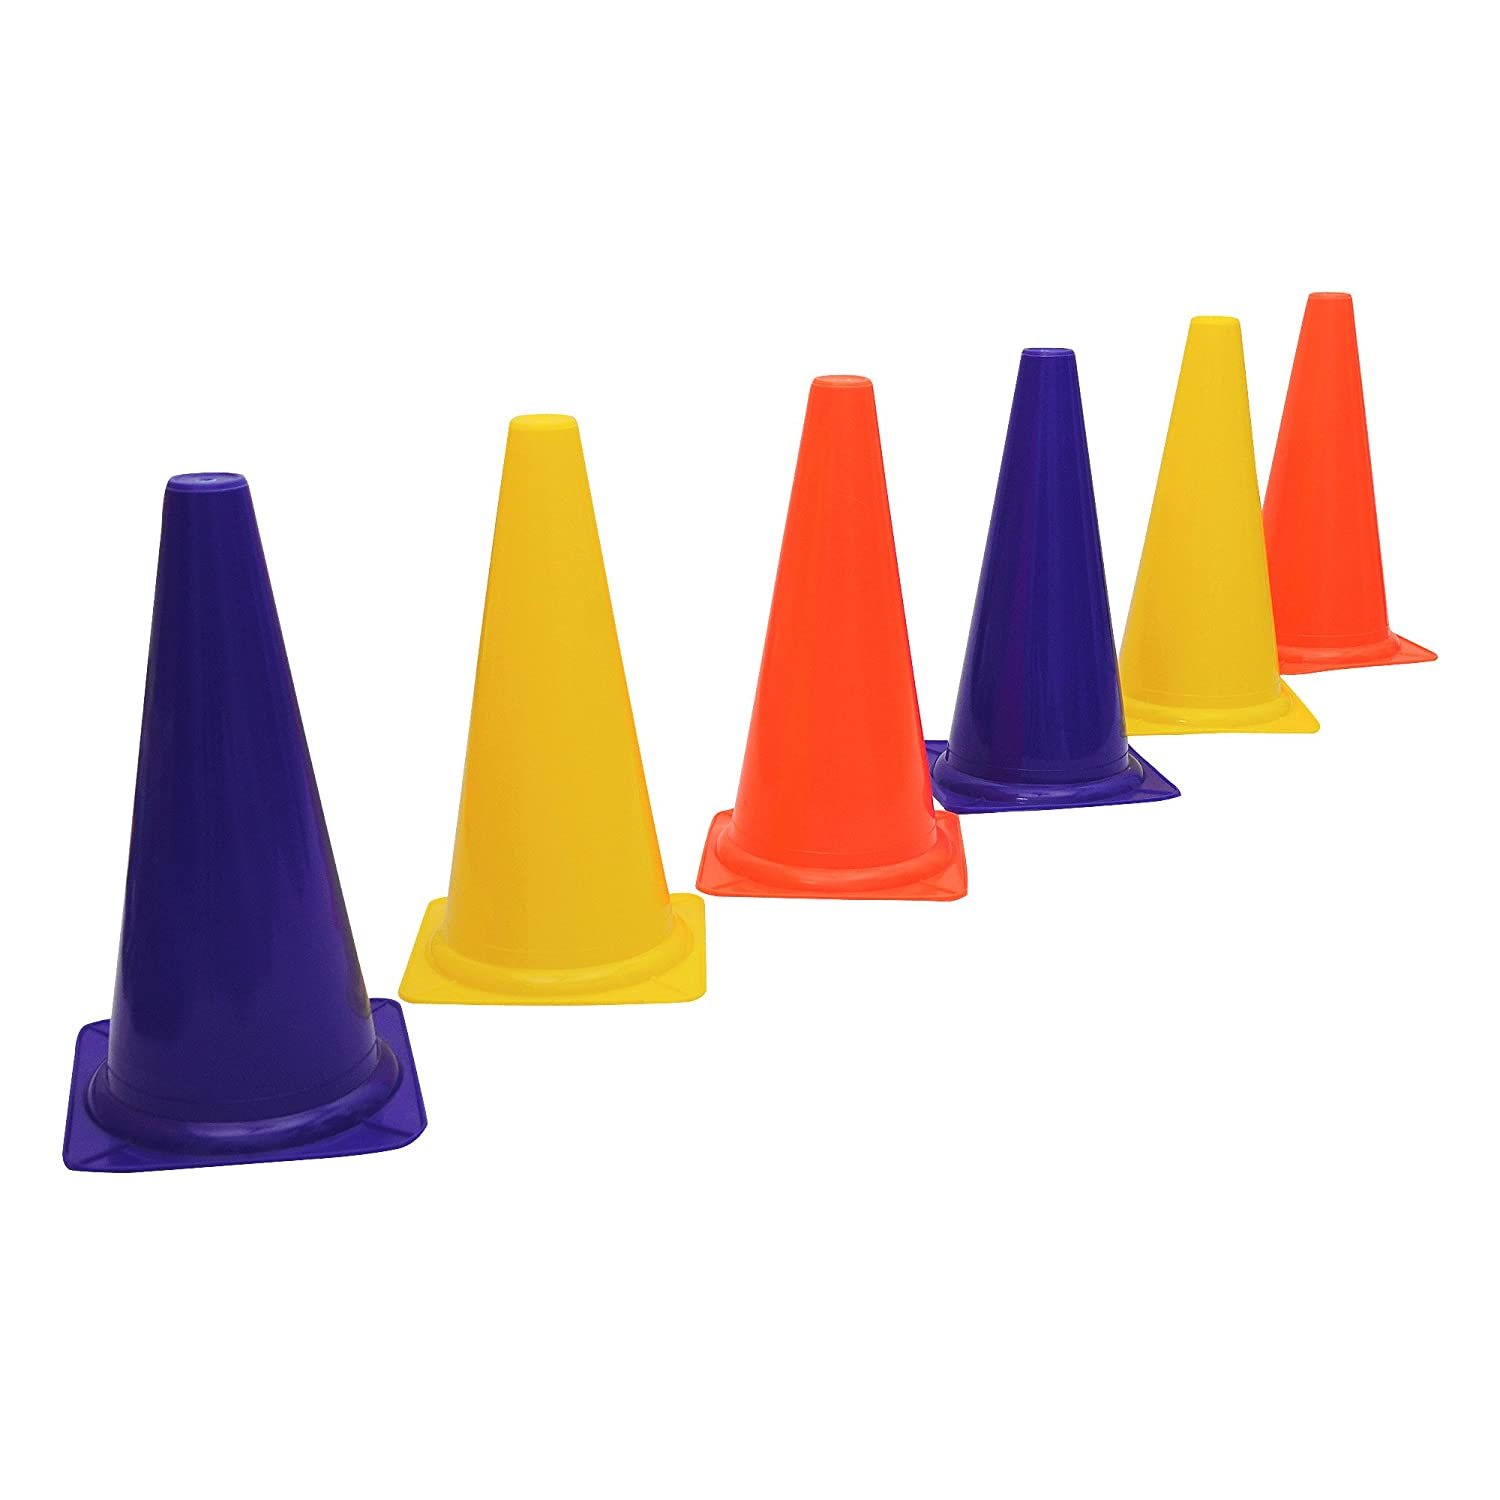 GSI Field Marker Agility Training Cones in LDPE Plastic for Sports Training, Traffic Cone, and Outdoor Agility Training - Pack of 12 (7 inch)